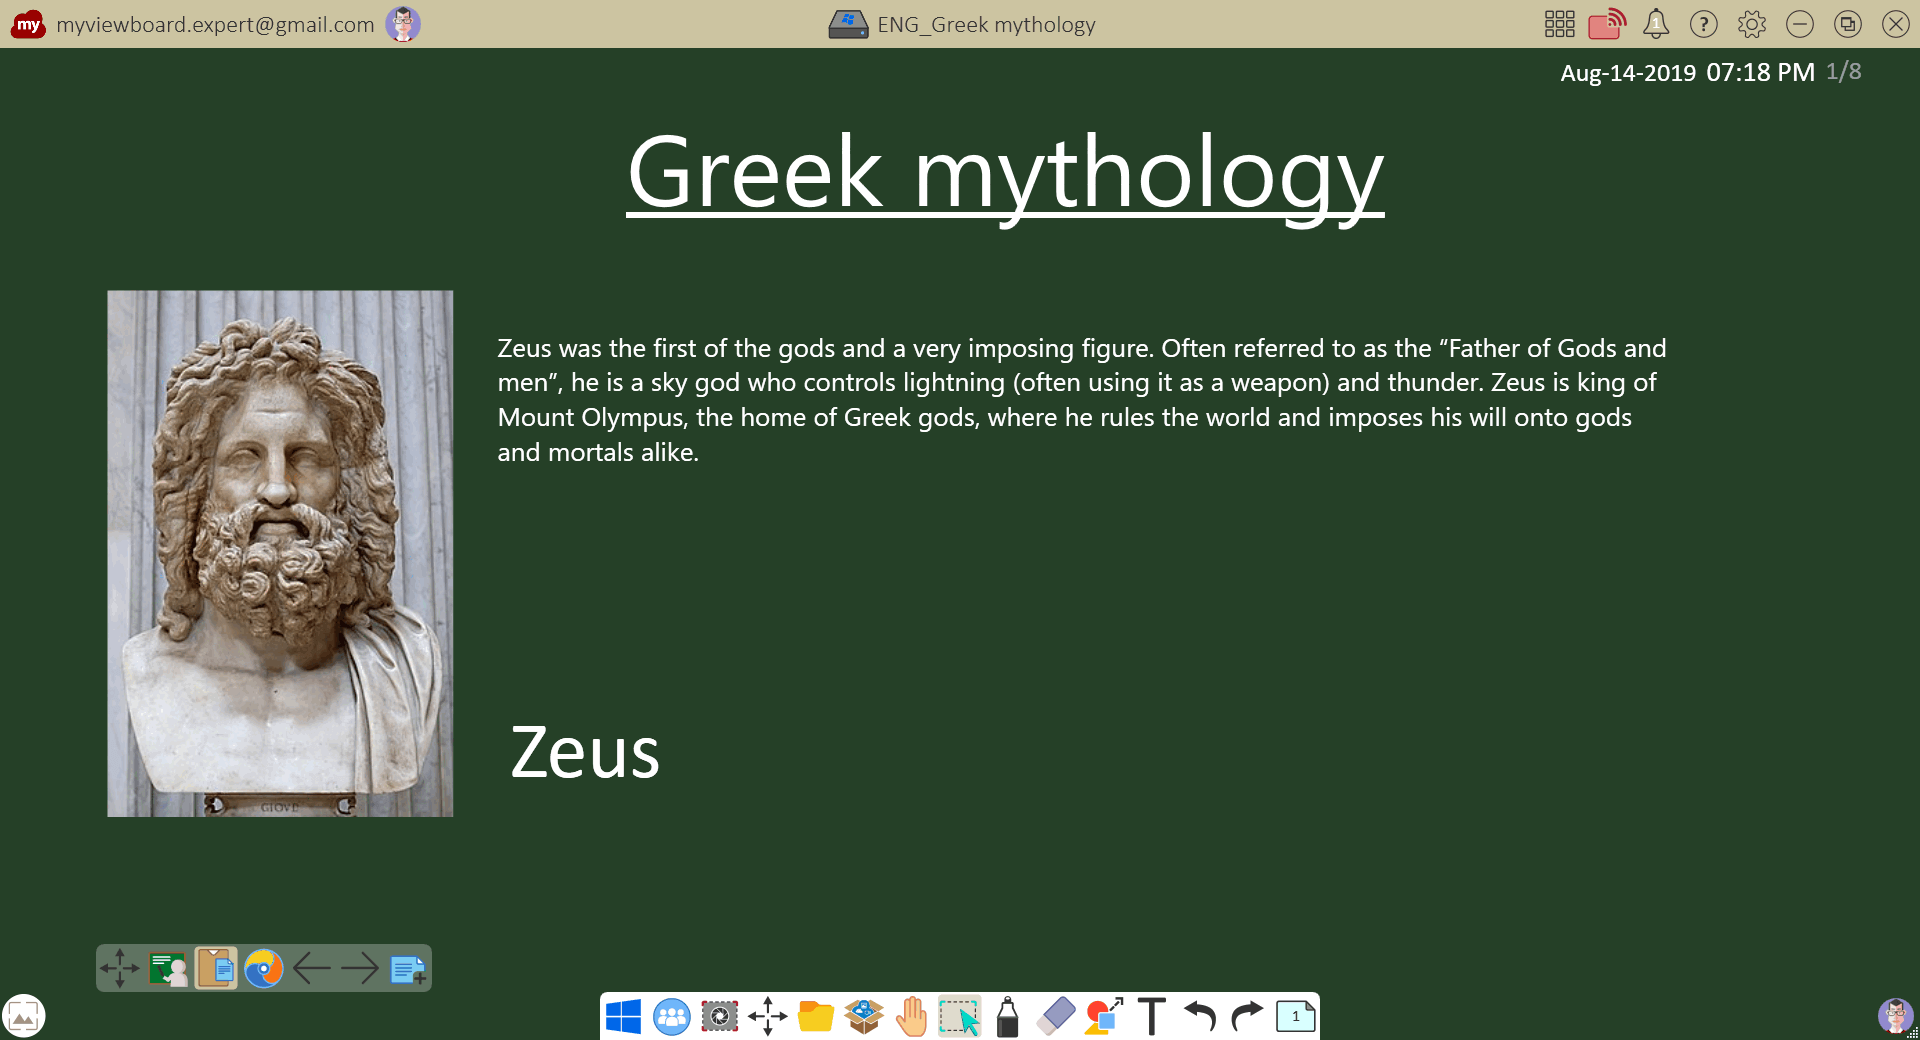 ENG Greek mythology.png